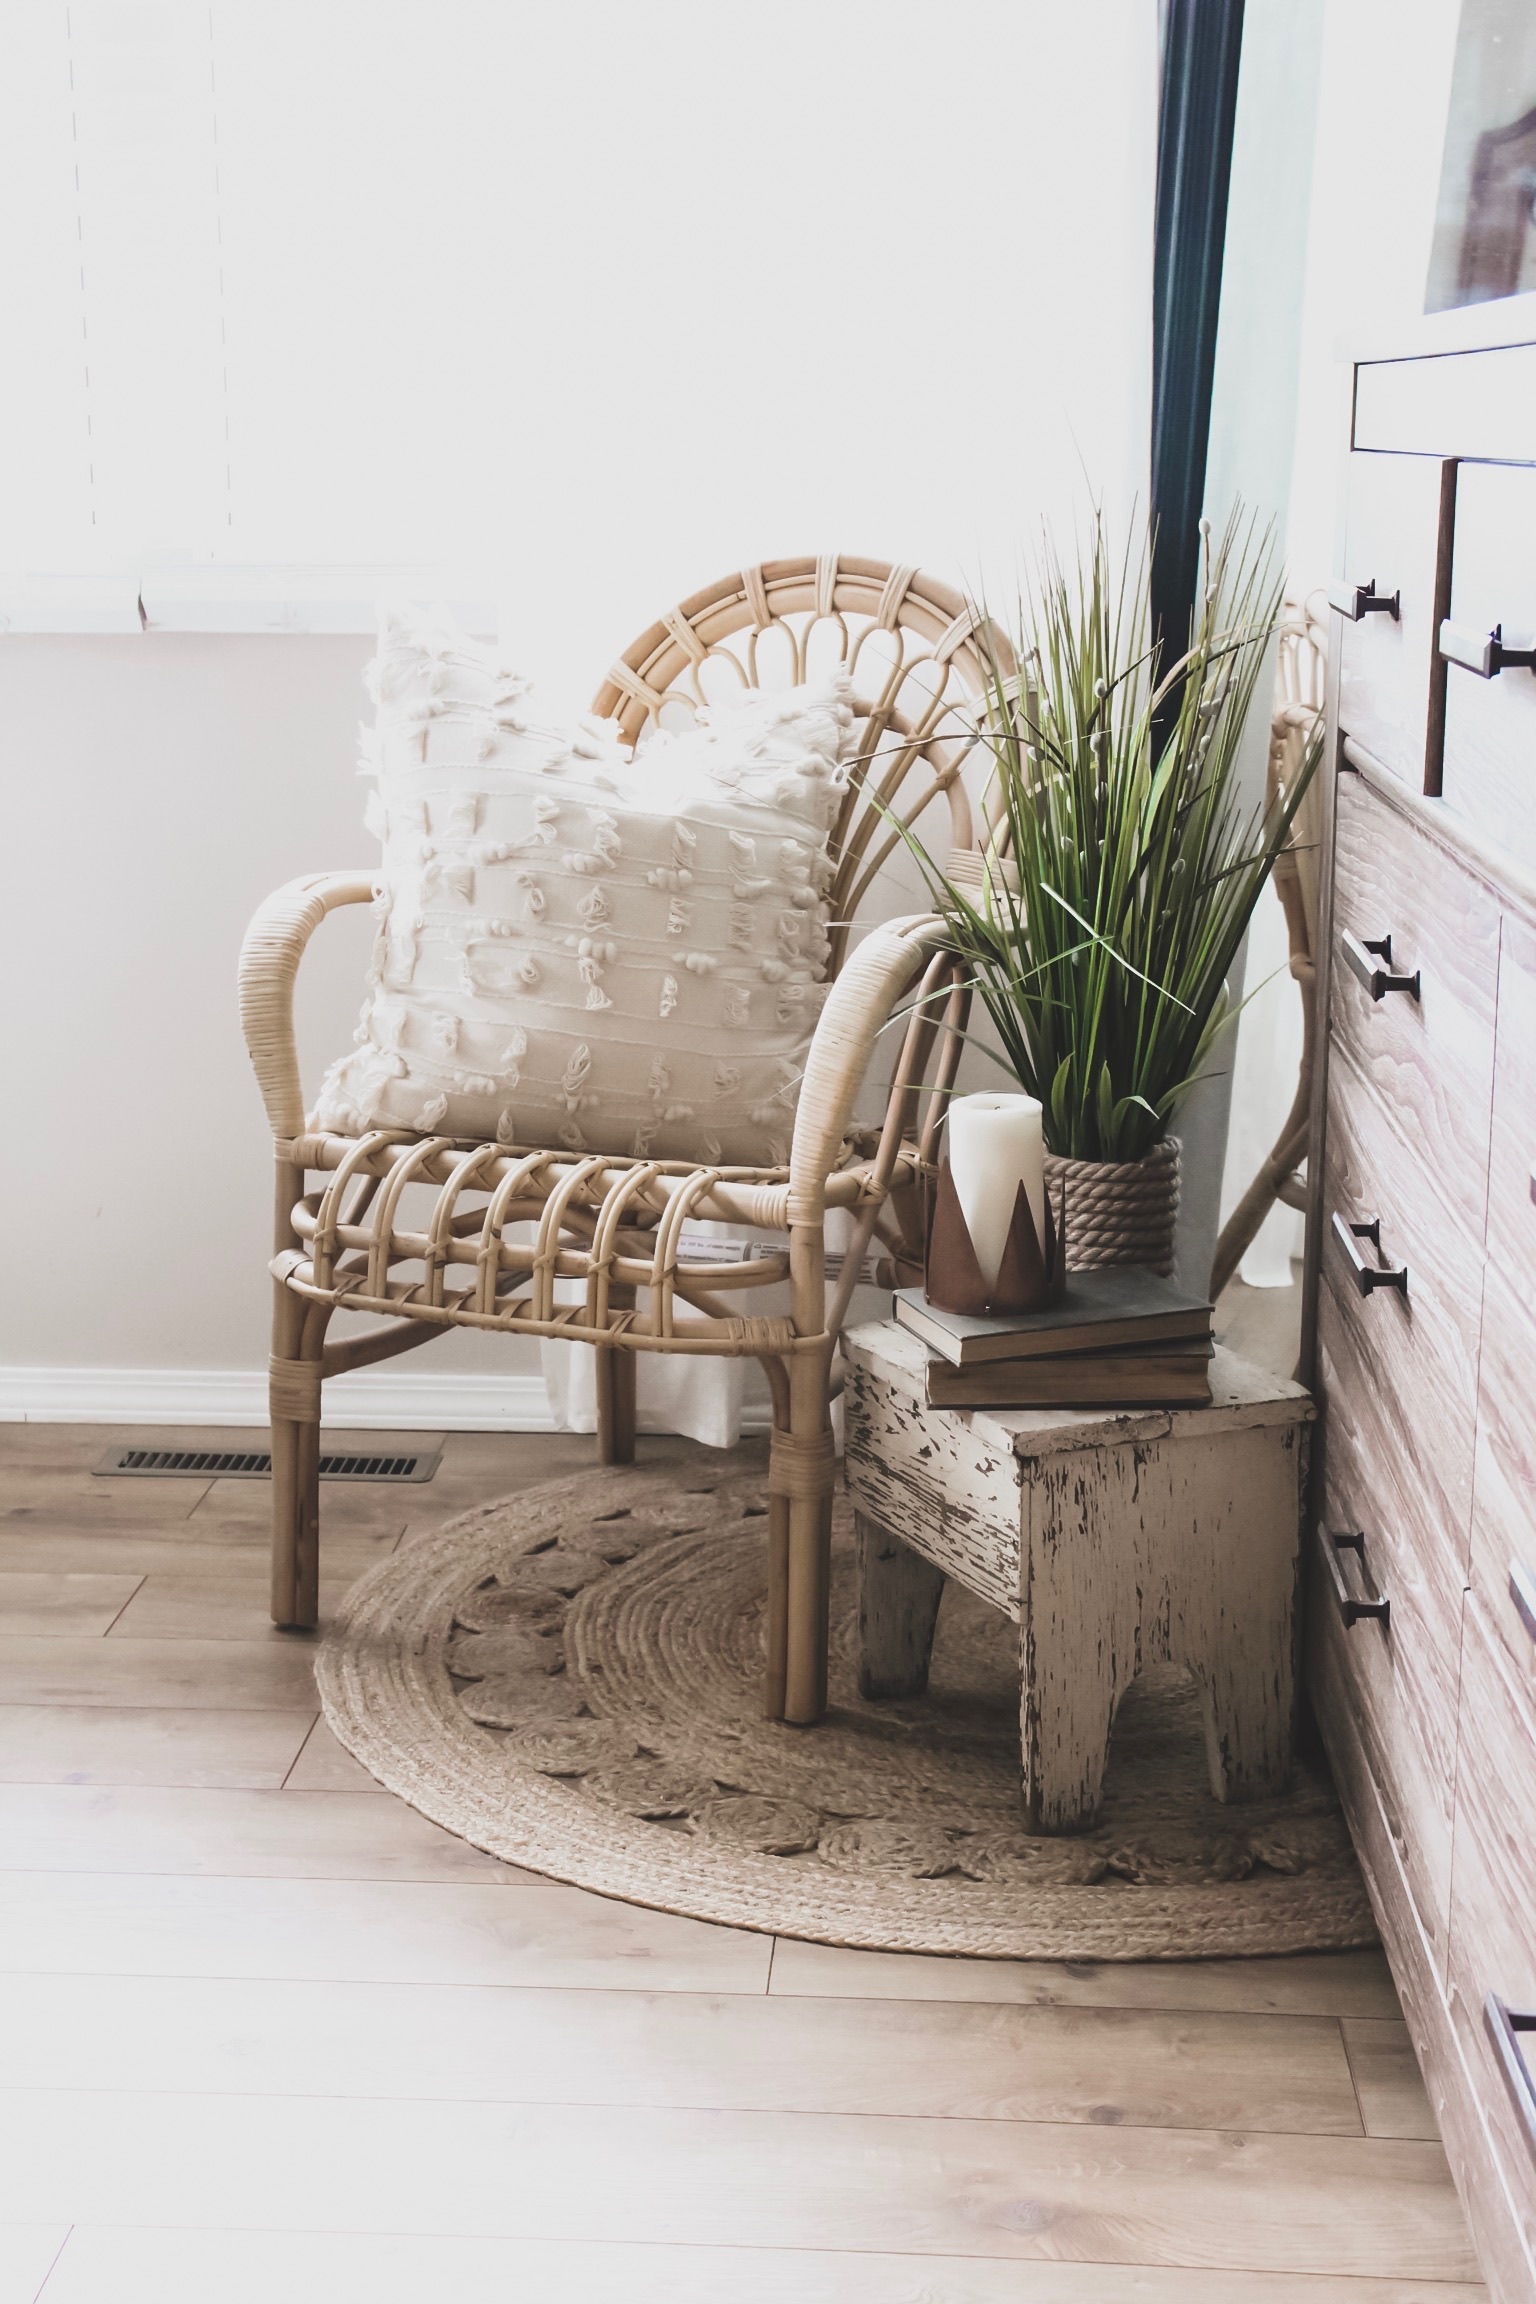 Kirkland's - Texturize Your Space for Summer with Farmhouse Flare Designs